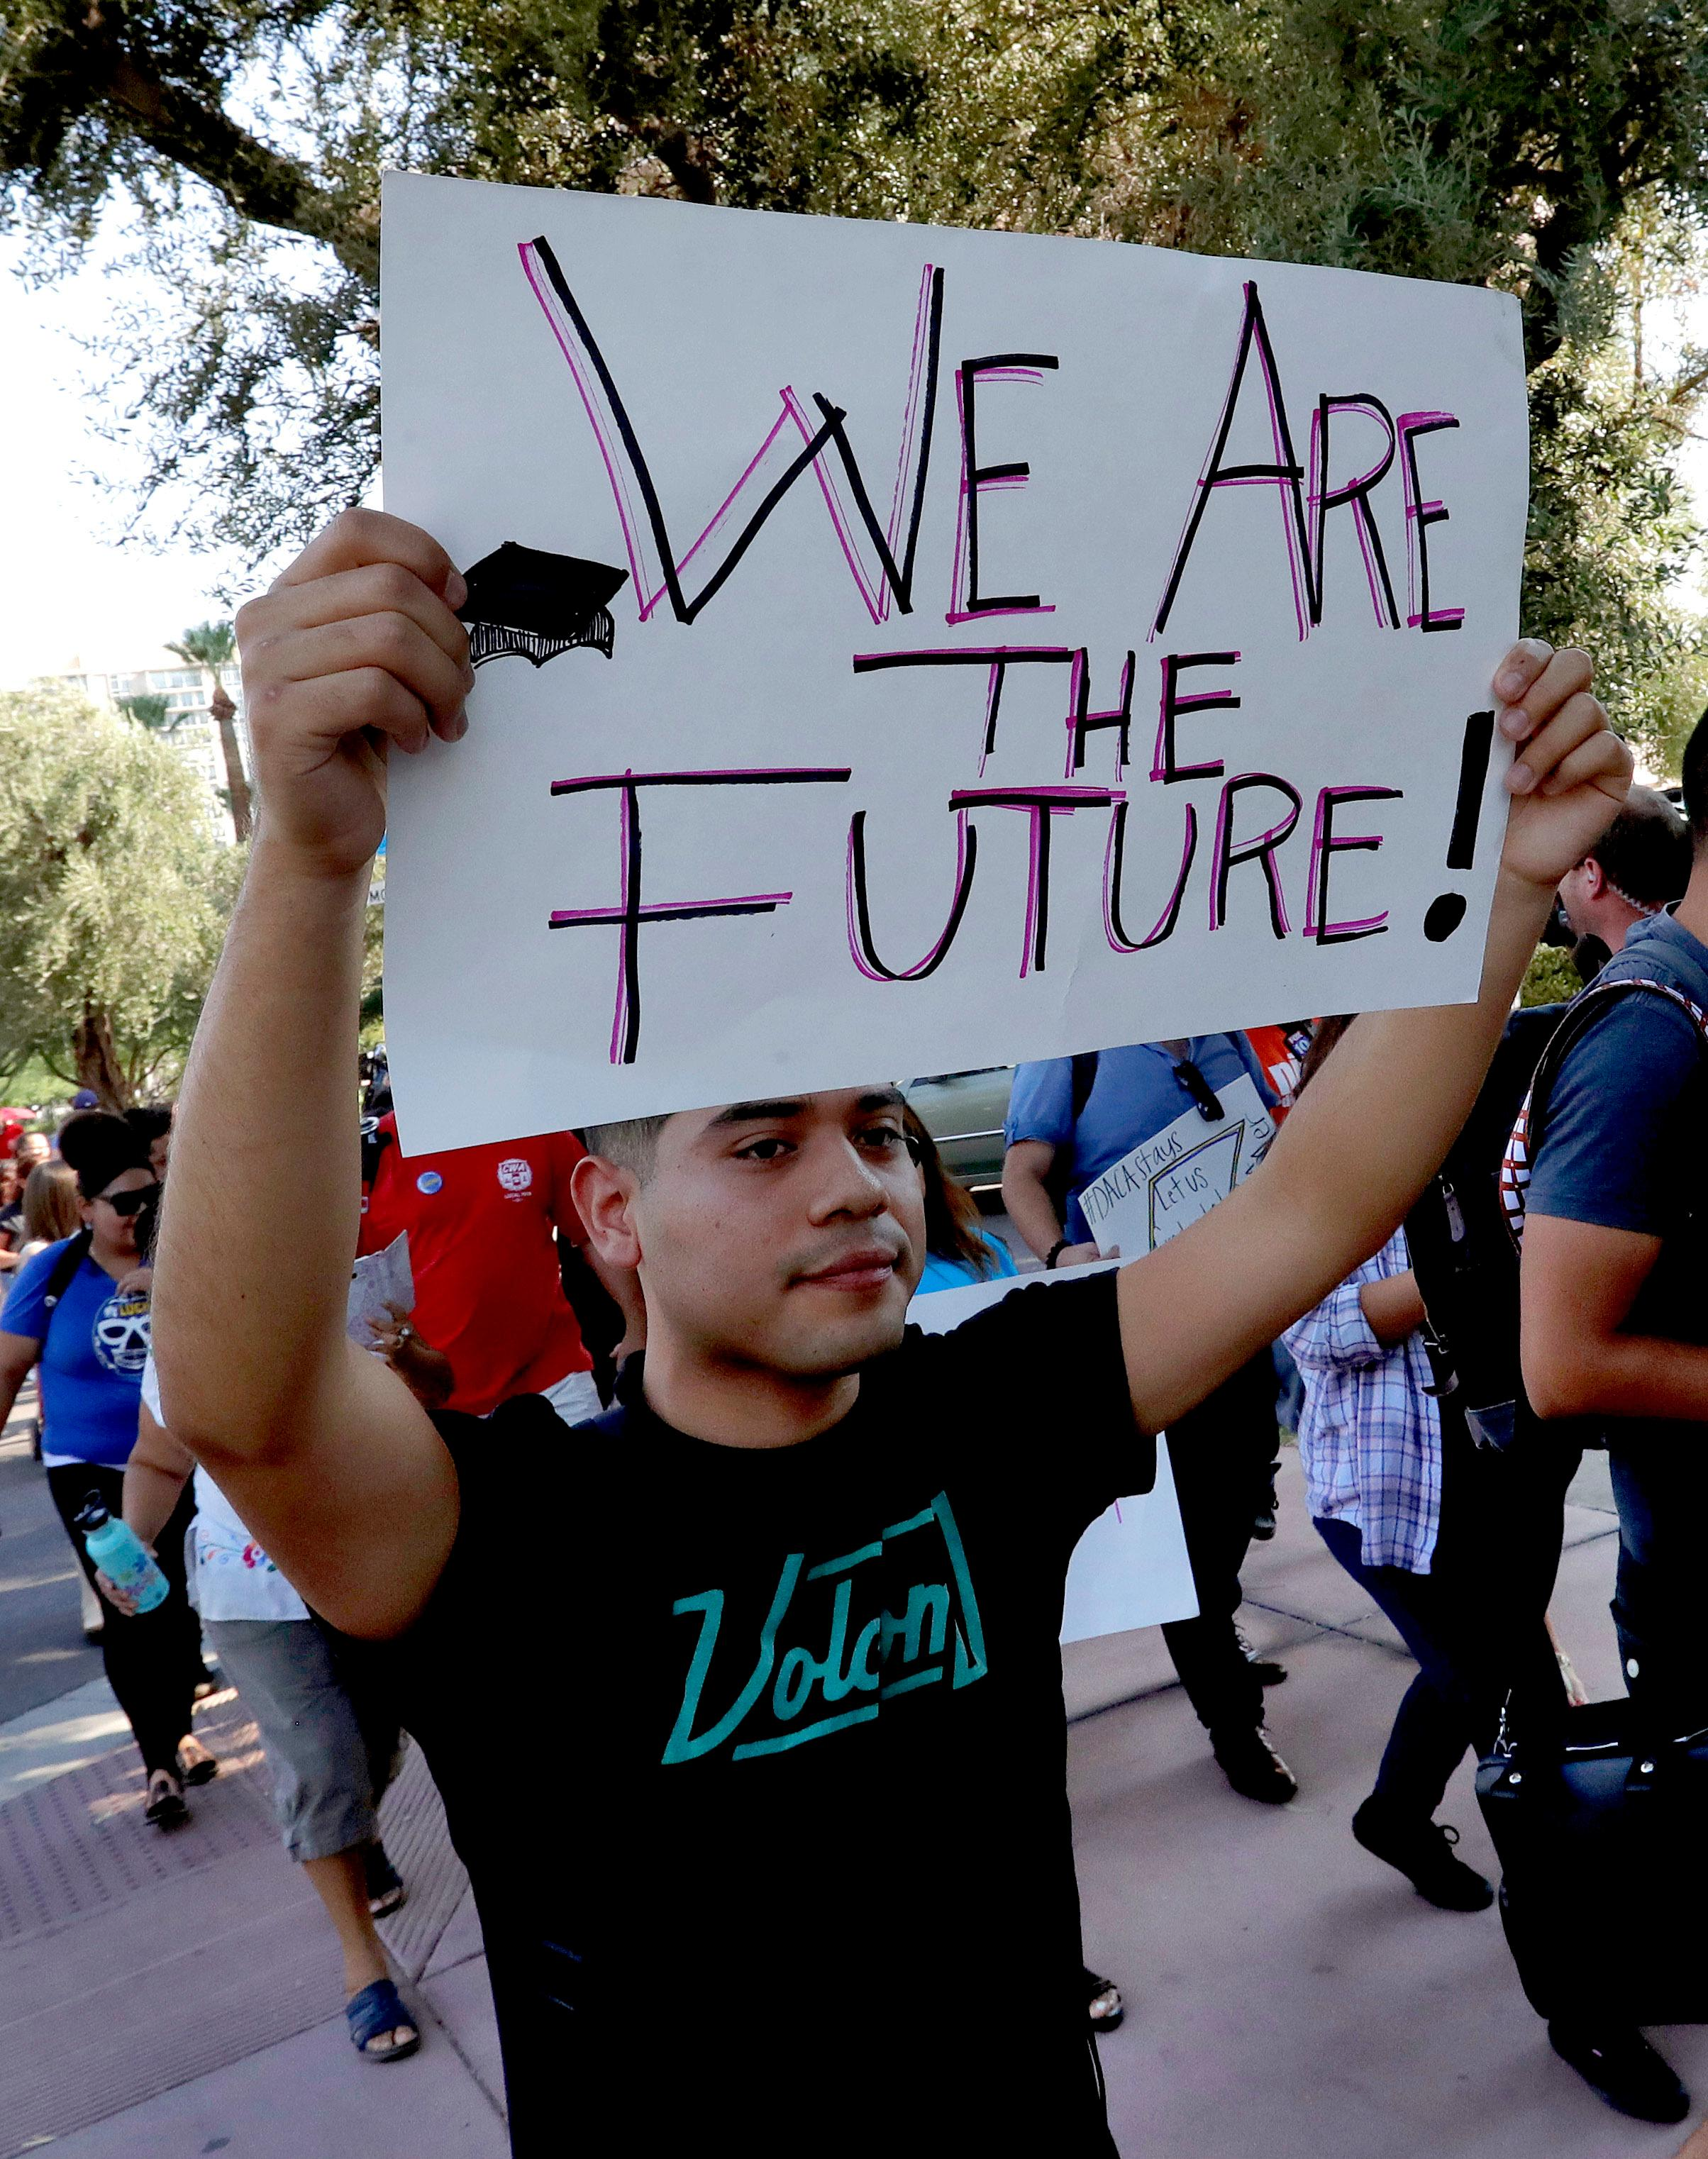 Deferred Action for Childhood Arrivals (DACA) supporters march to the Immigration and Customs Enforcement office to protest shortly after U.S. Attorney General Jeff Sessions' announcement that the Deferred Action for Childhood Arrivals (DACA), will be suspended with a six-month delay, Tuesday, Sept. 5, 2017, in Phoenix.{&amp;nbsp;} (AP Photo/Matt York)<p></p>